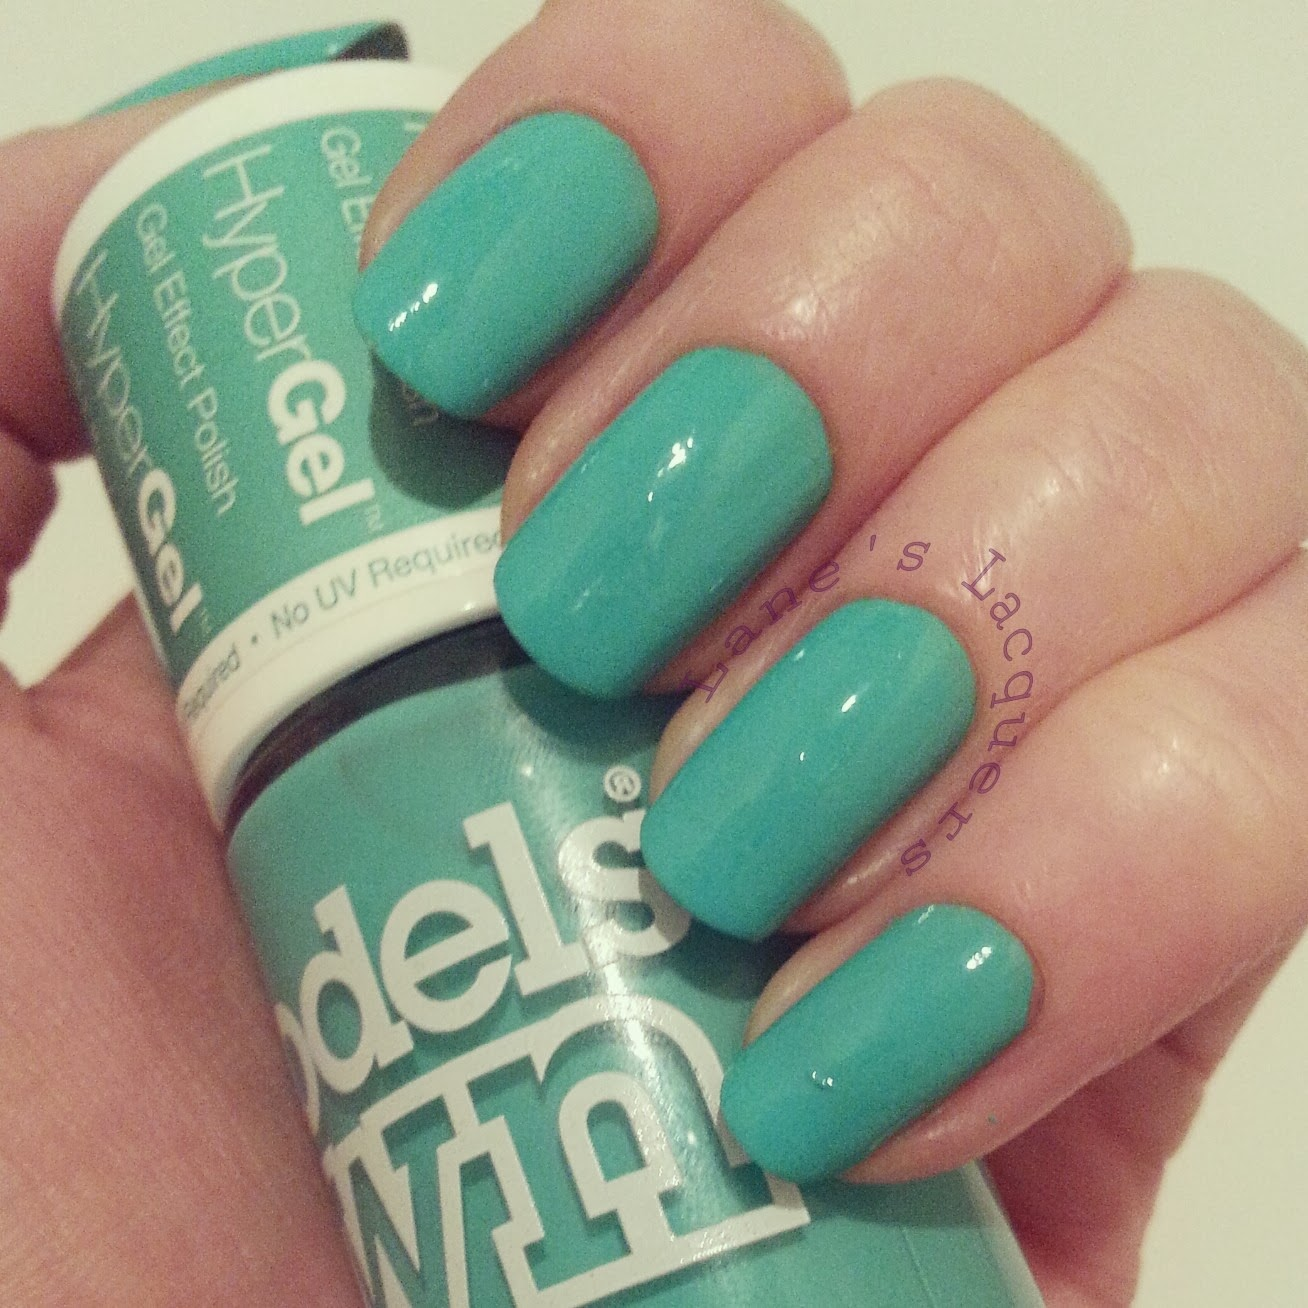 models-own-hypergels-turquoise-gloss-nails